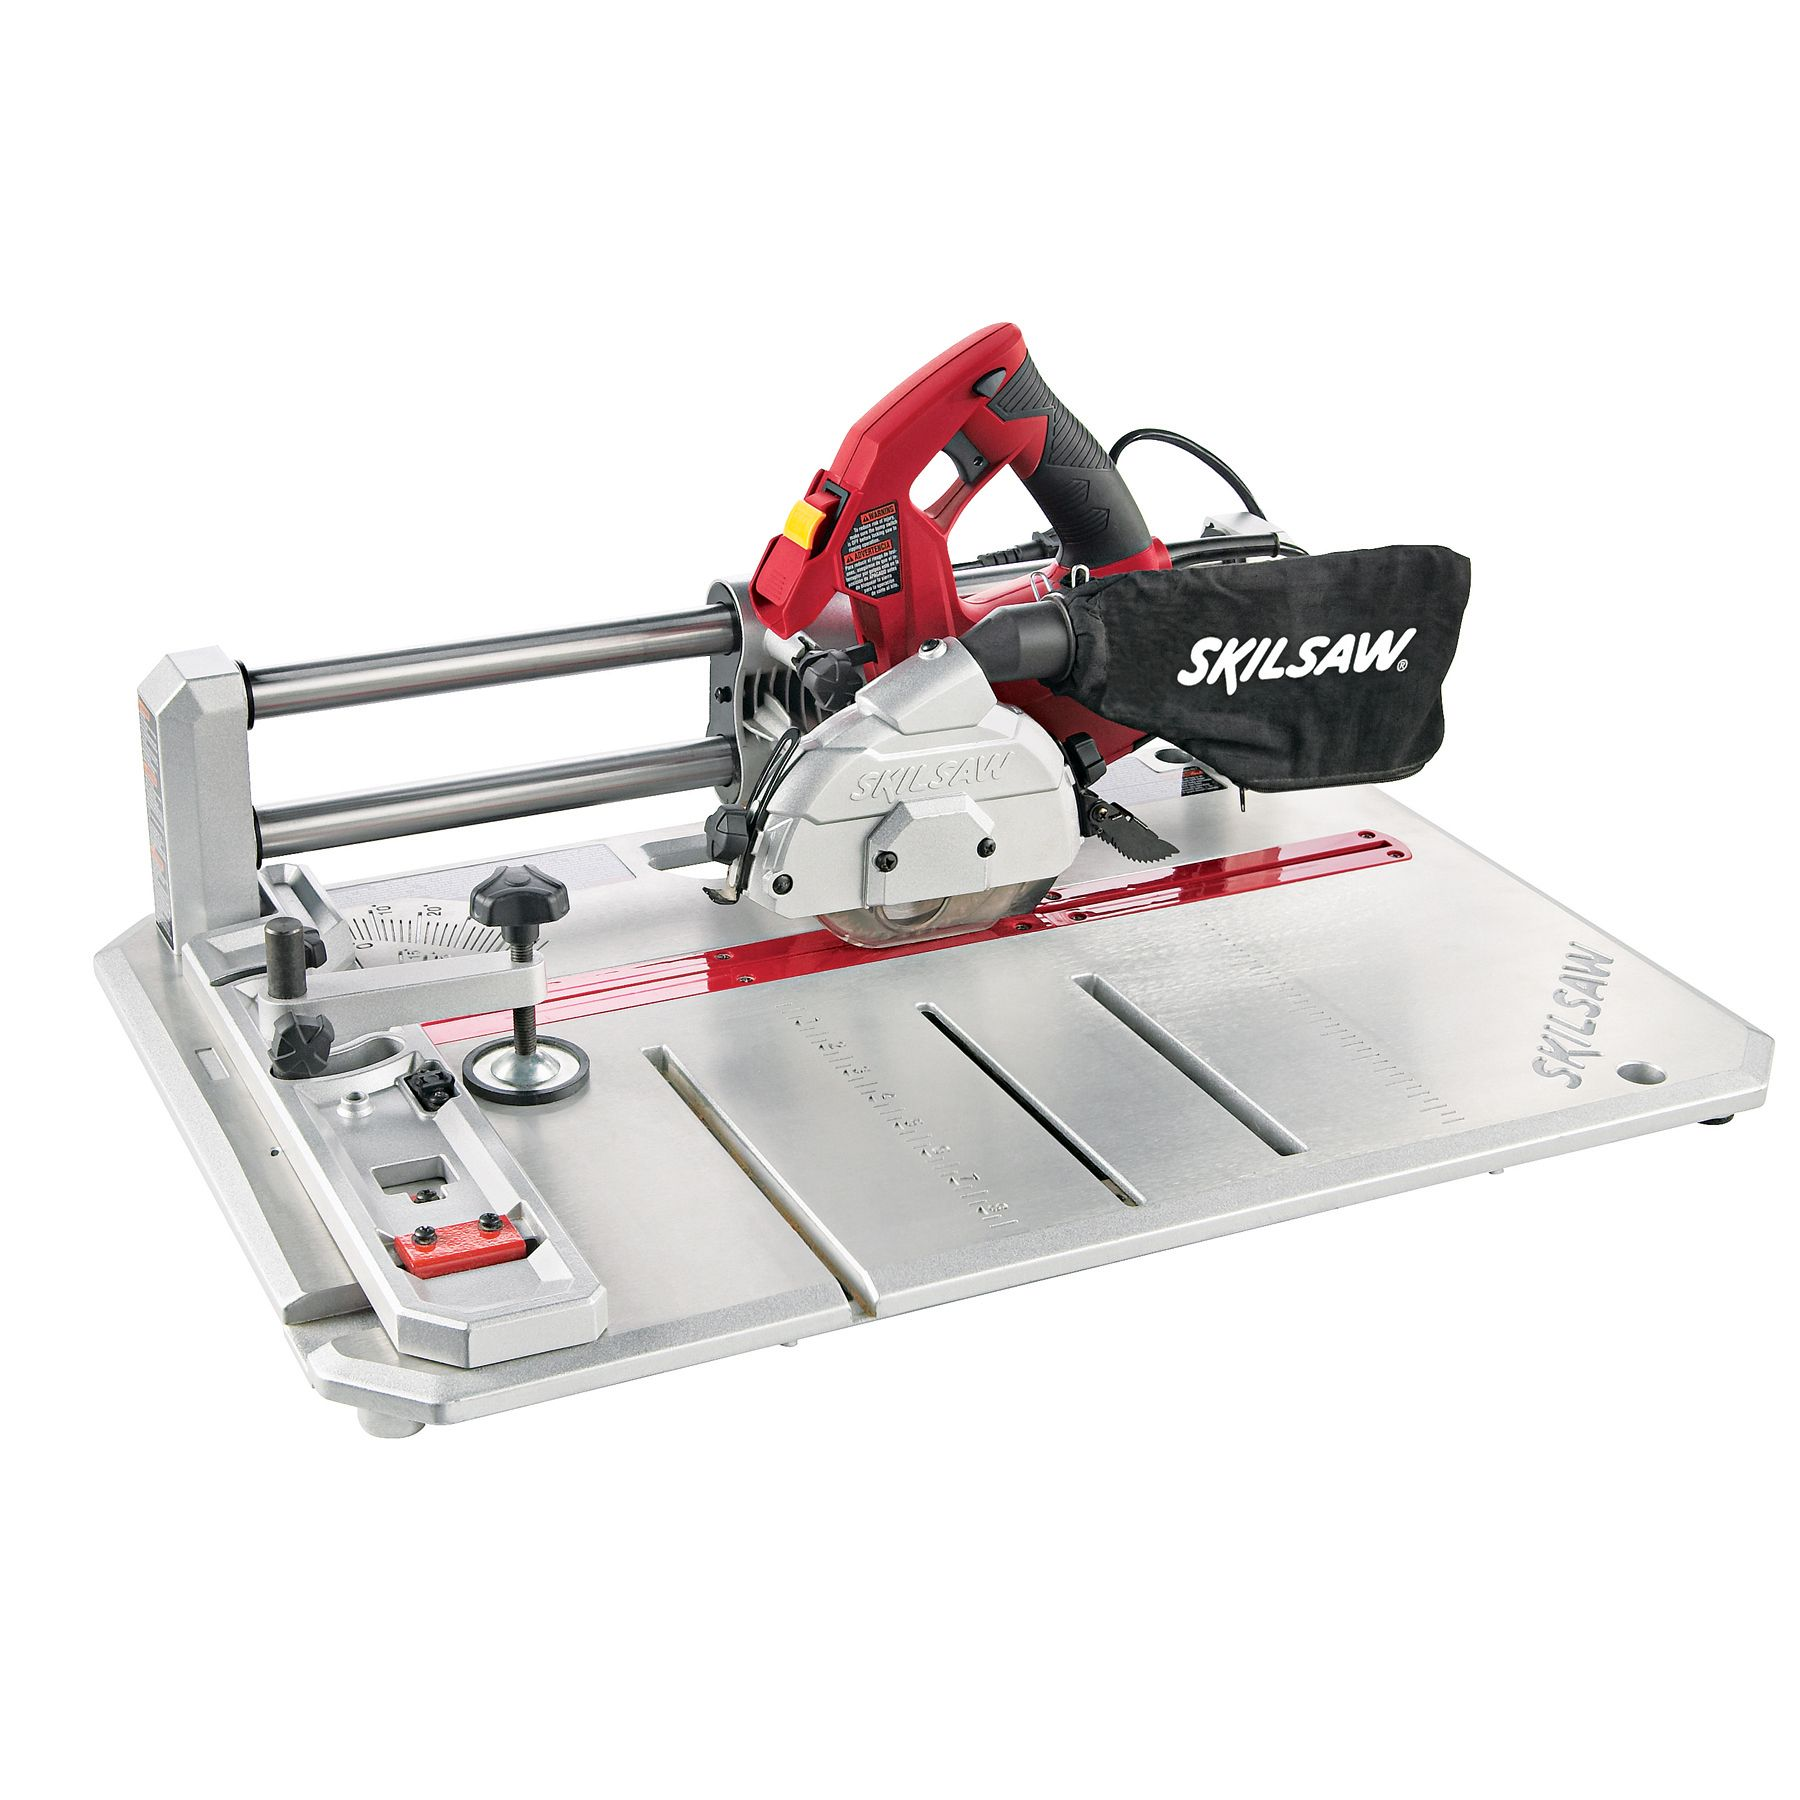 Skil  7.0 Amp Flooring Saw